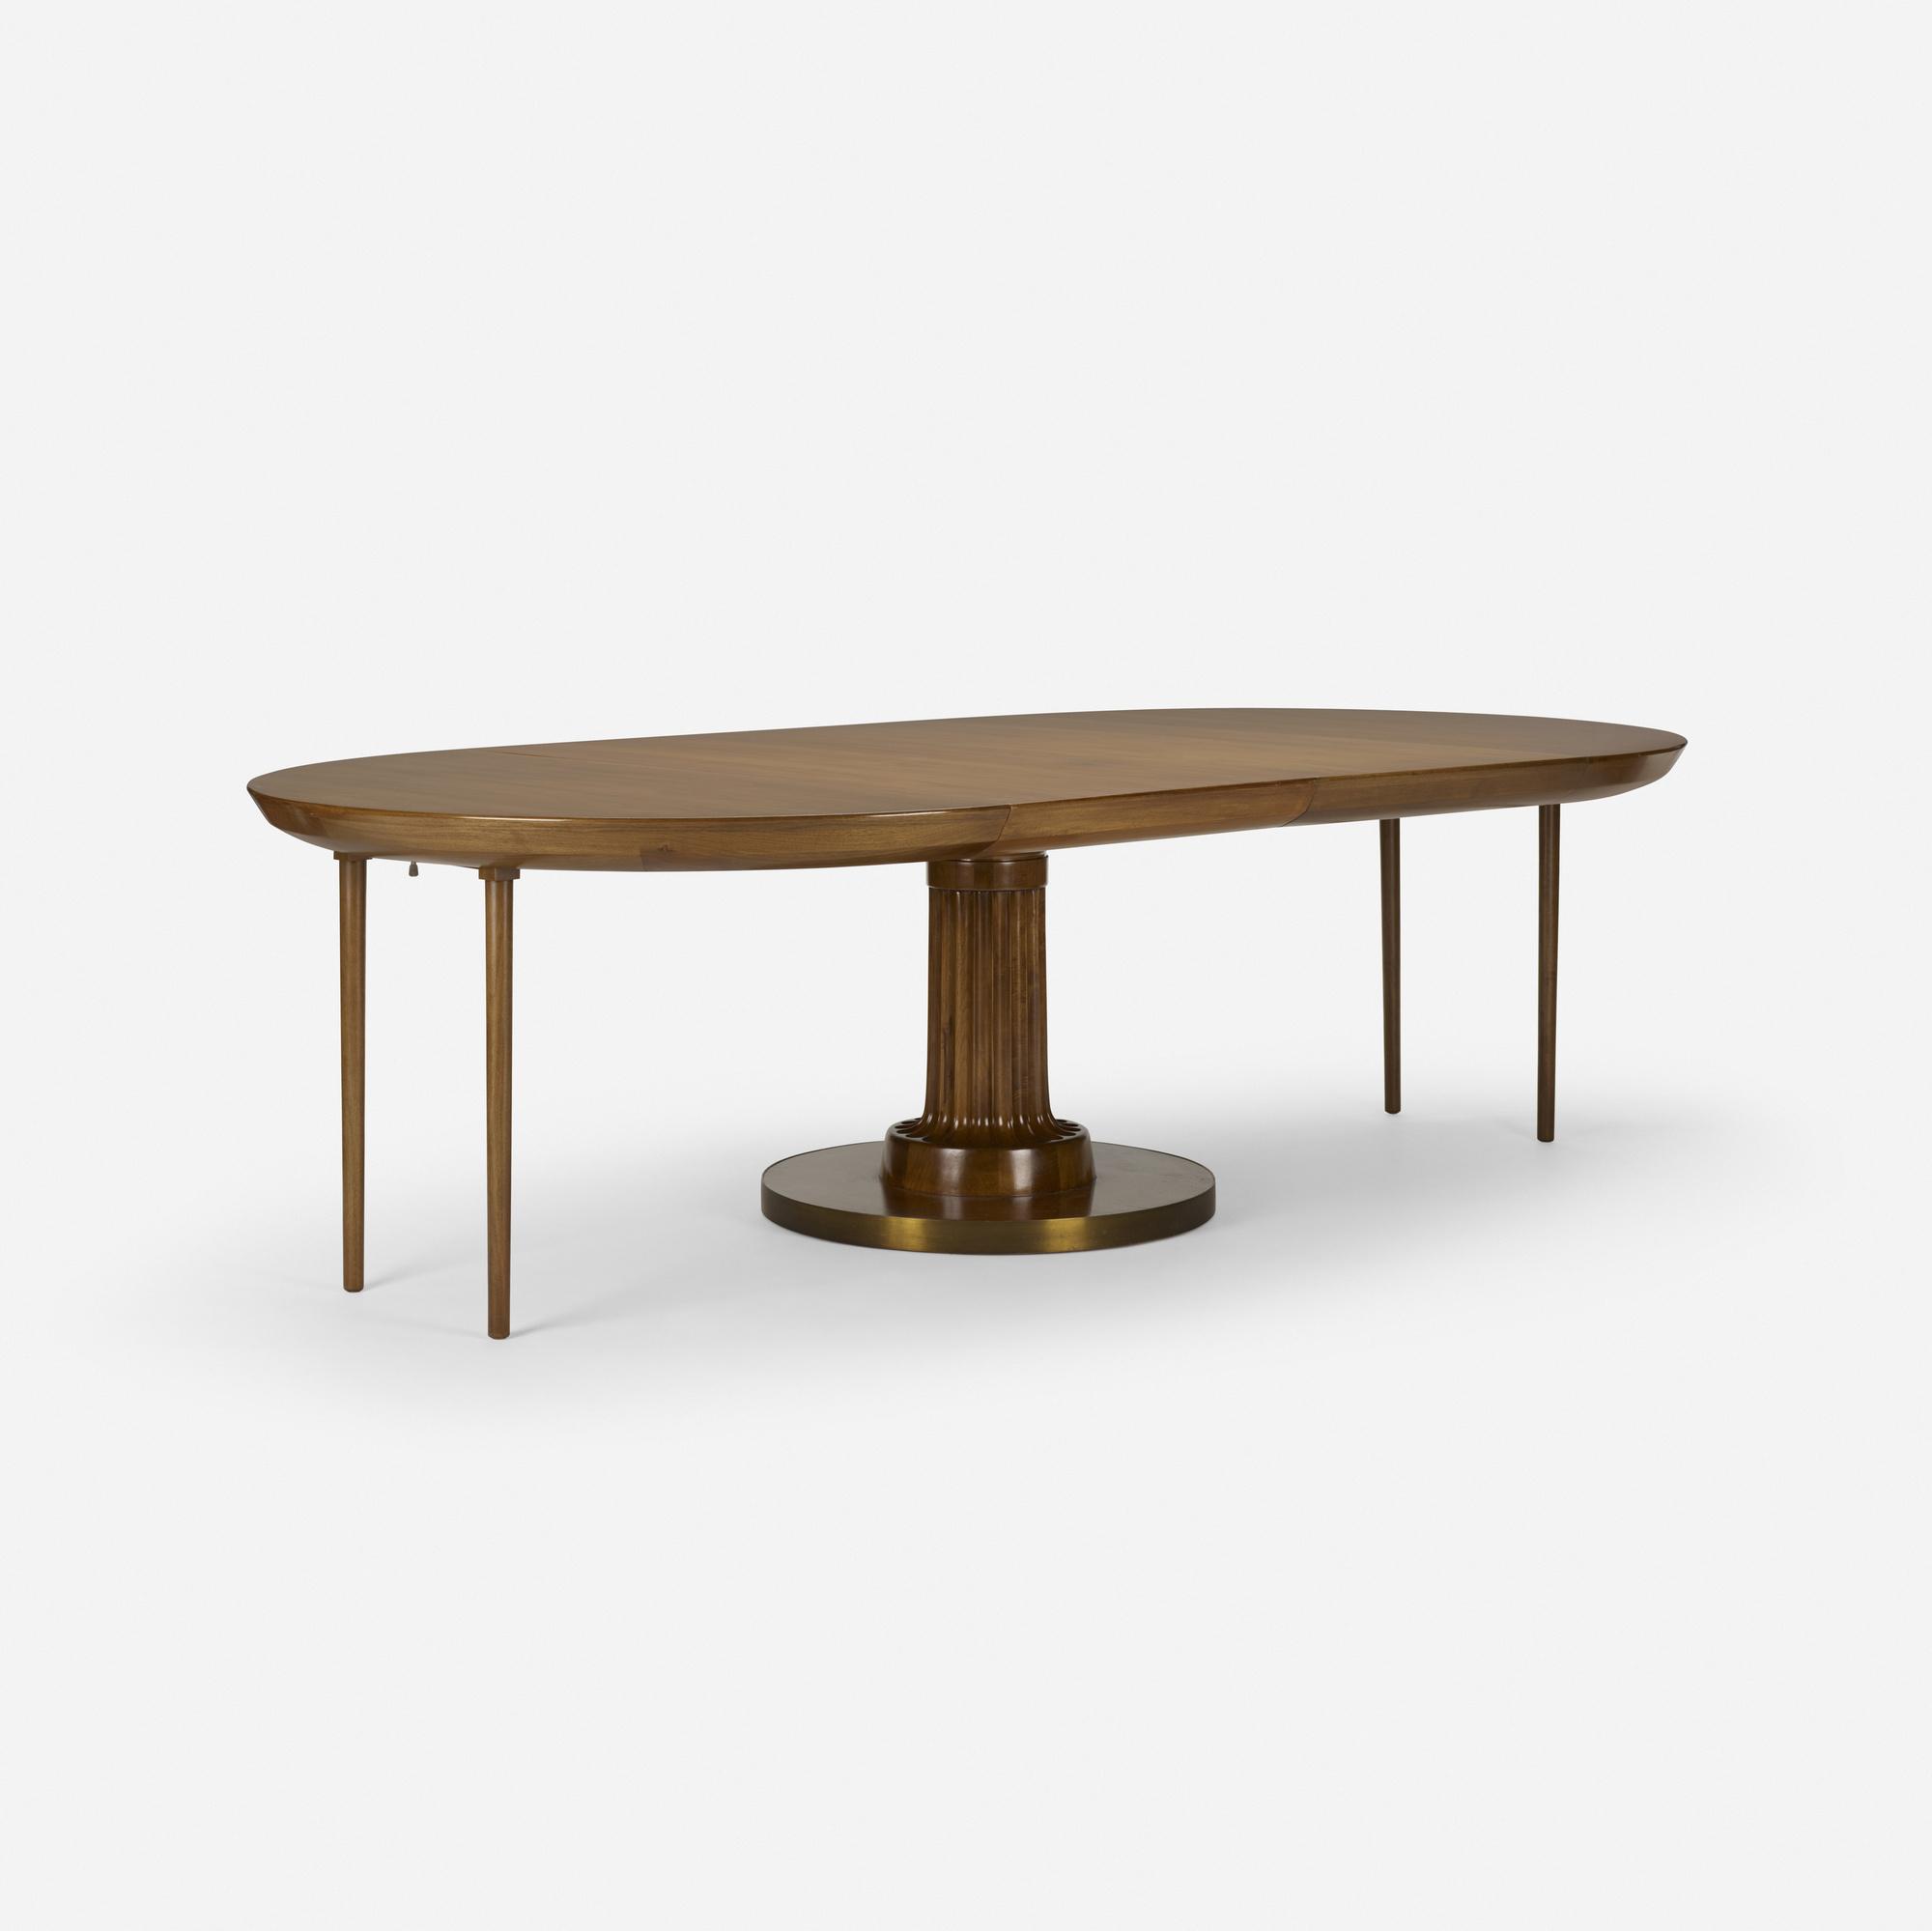 200 t h robsjohn gibbings dining table model no 149 design